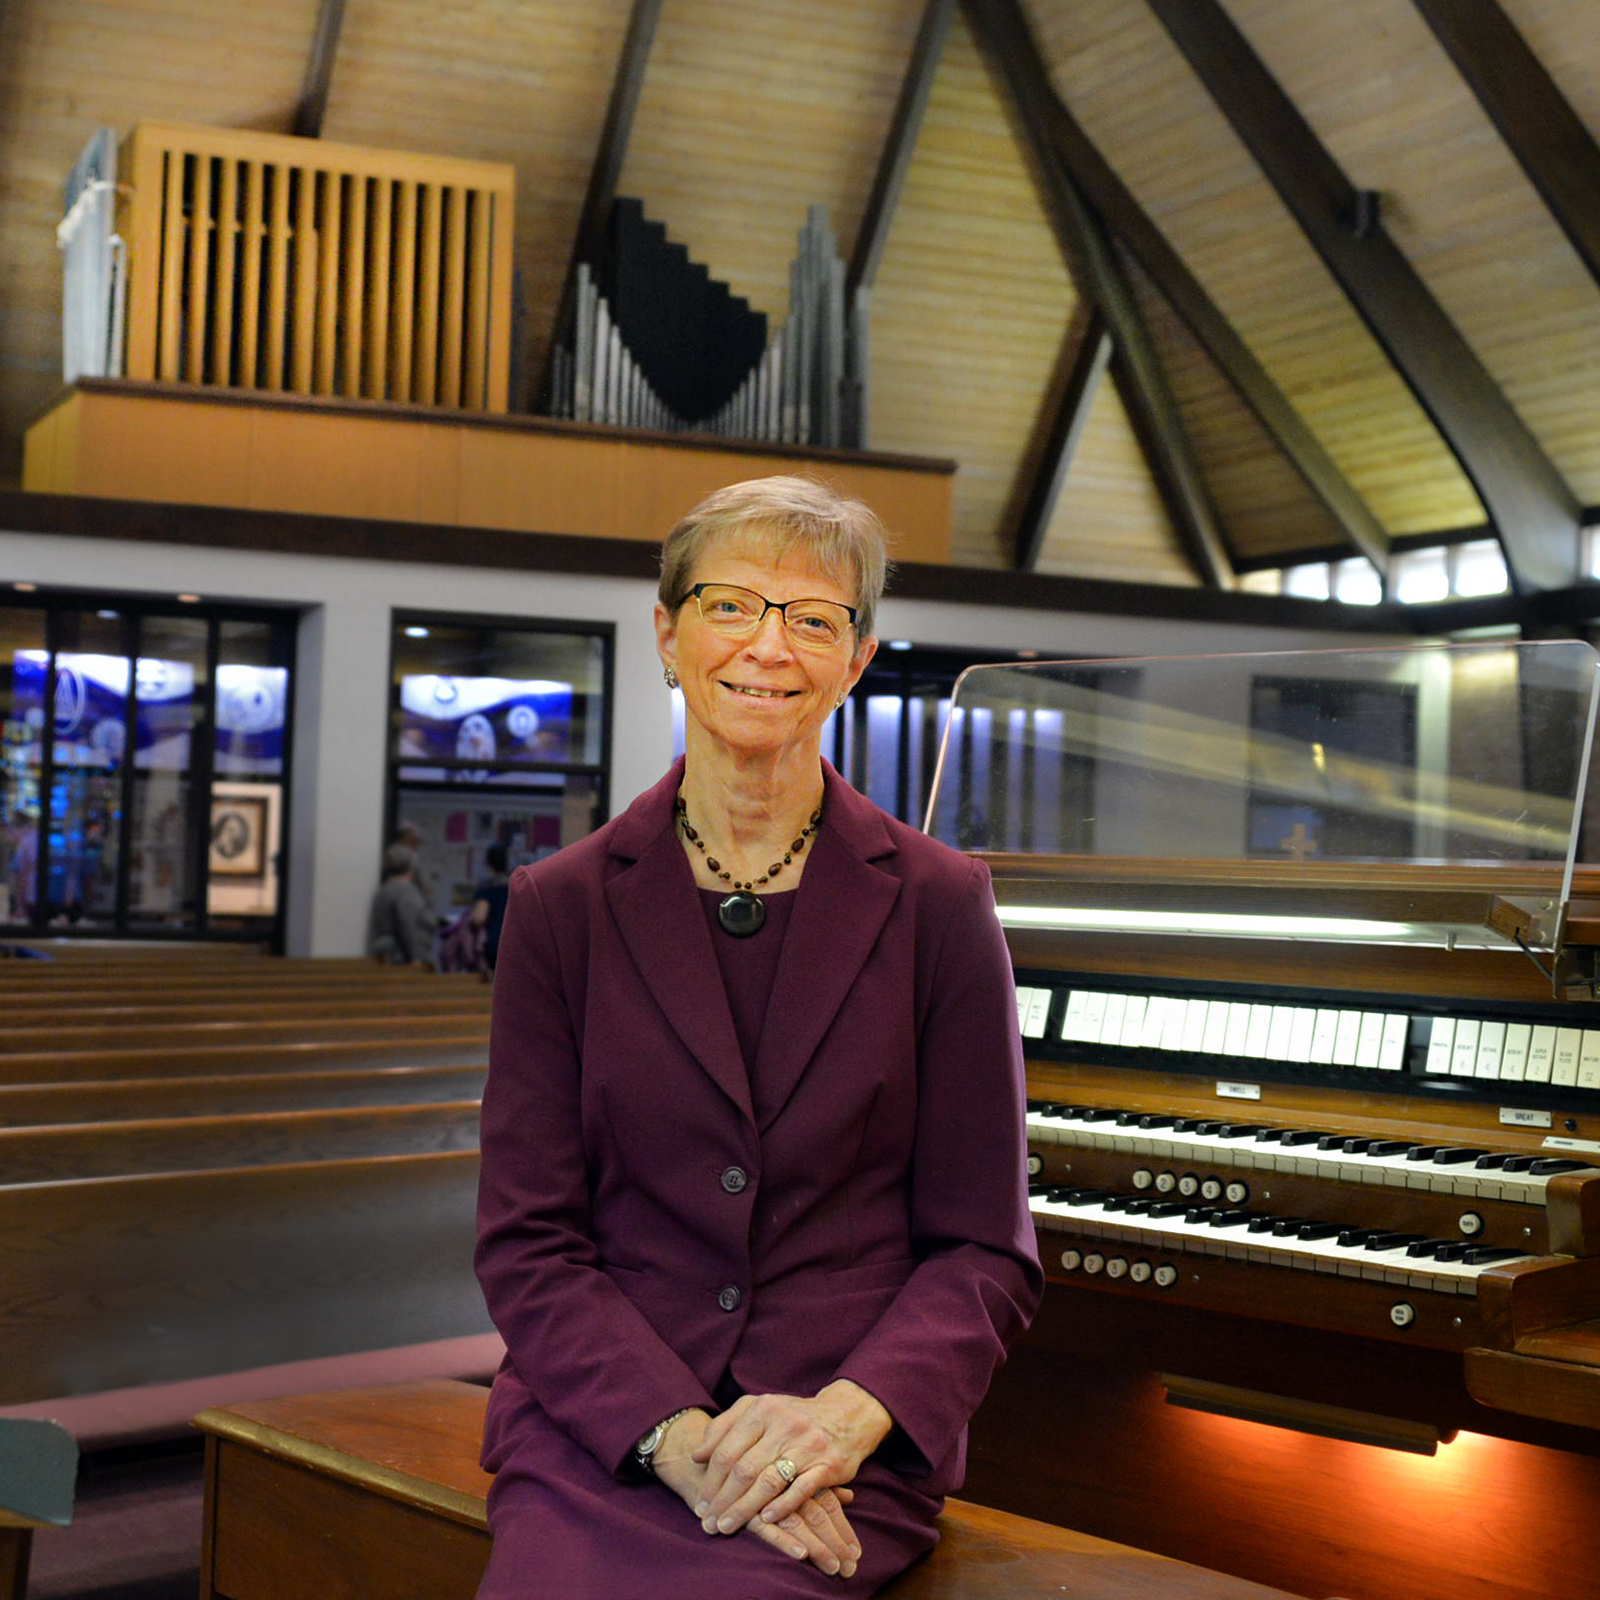 Ruth at organ 10-20-19